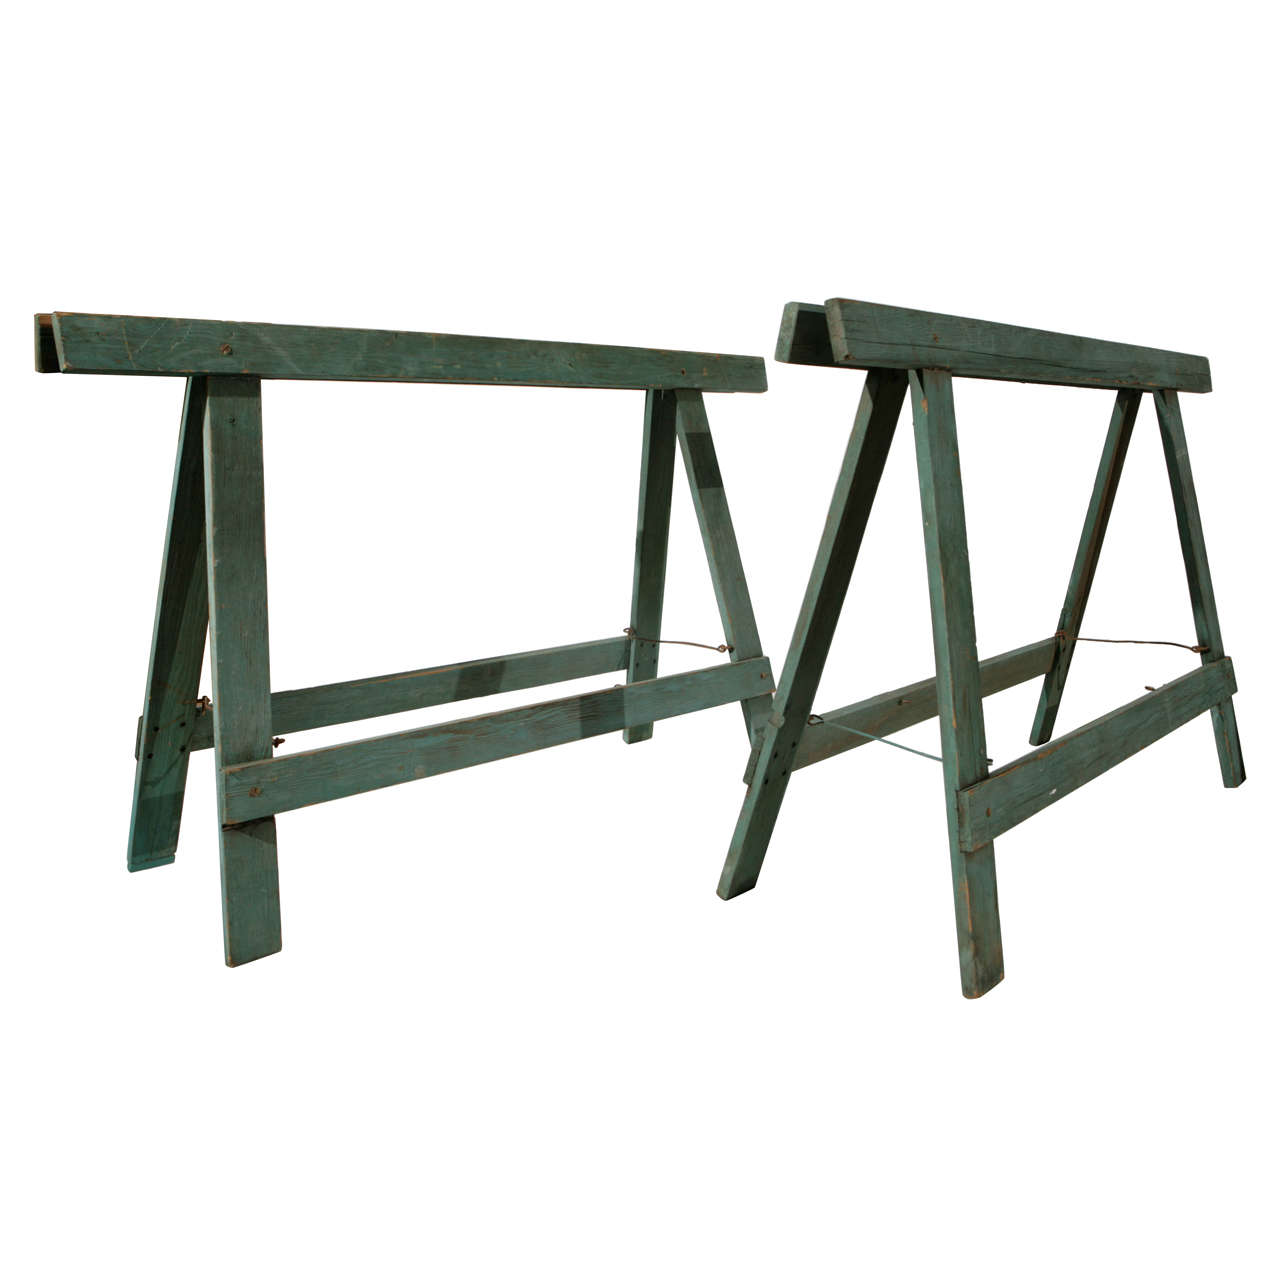 Work Bench Legs | Workbench Supports | Workbench Legs With Casters